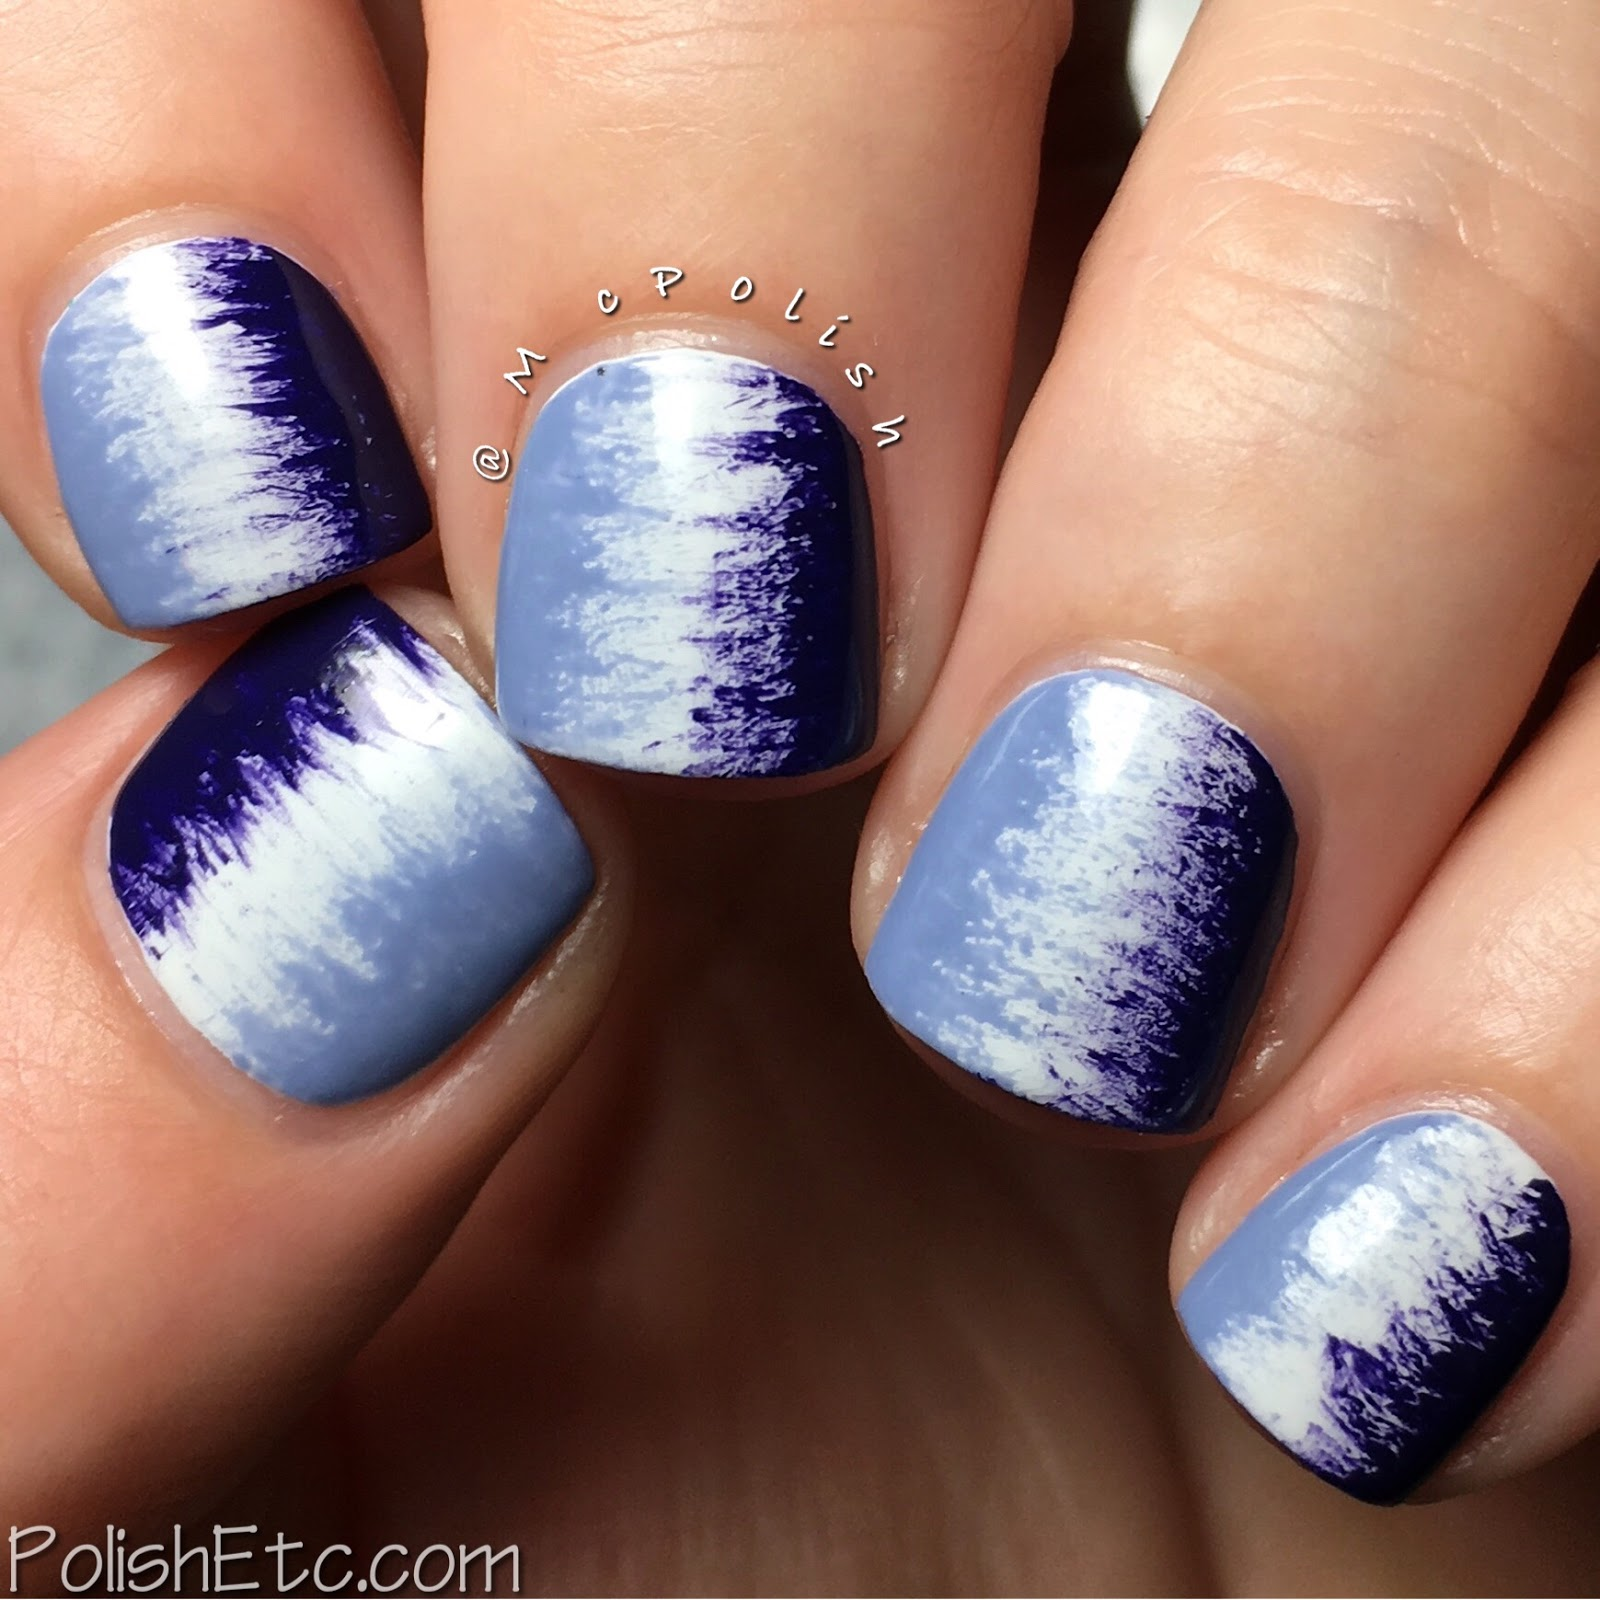 Violet Nails for the #31DC2016Weekly - Polish Etc.